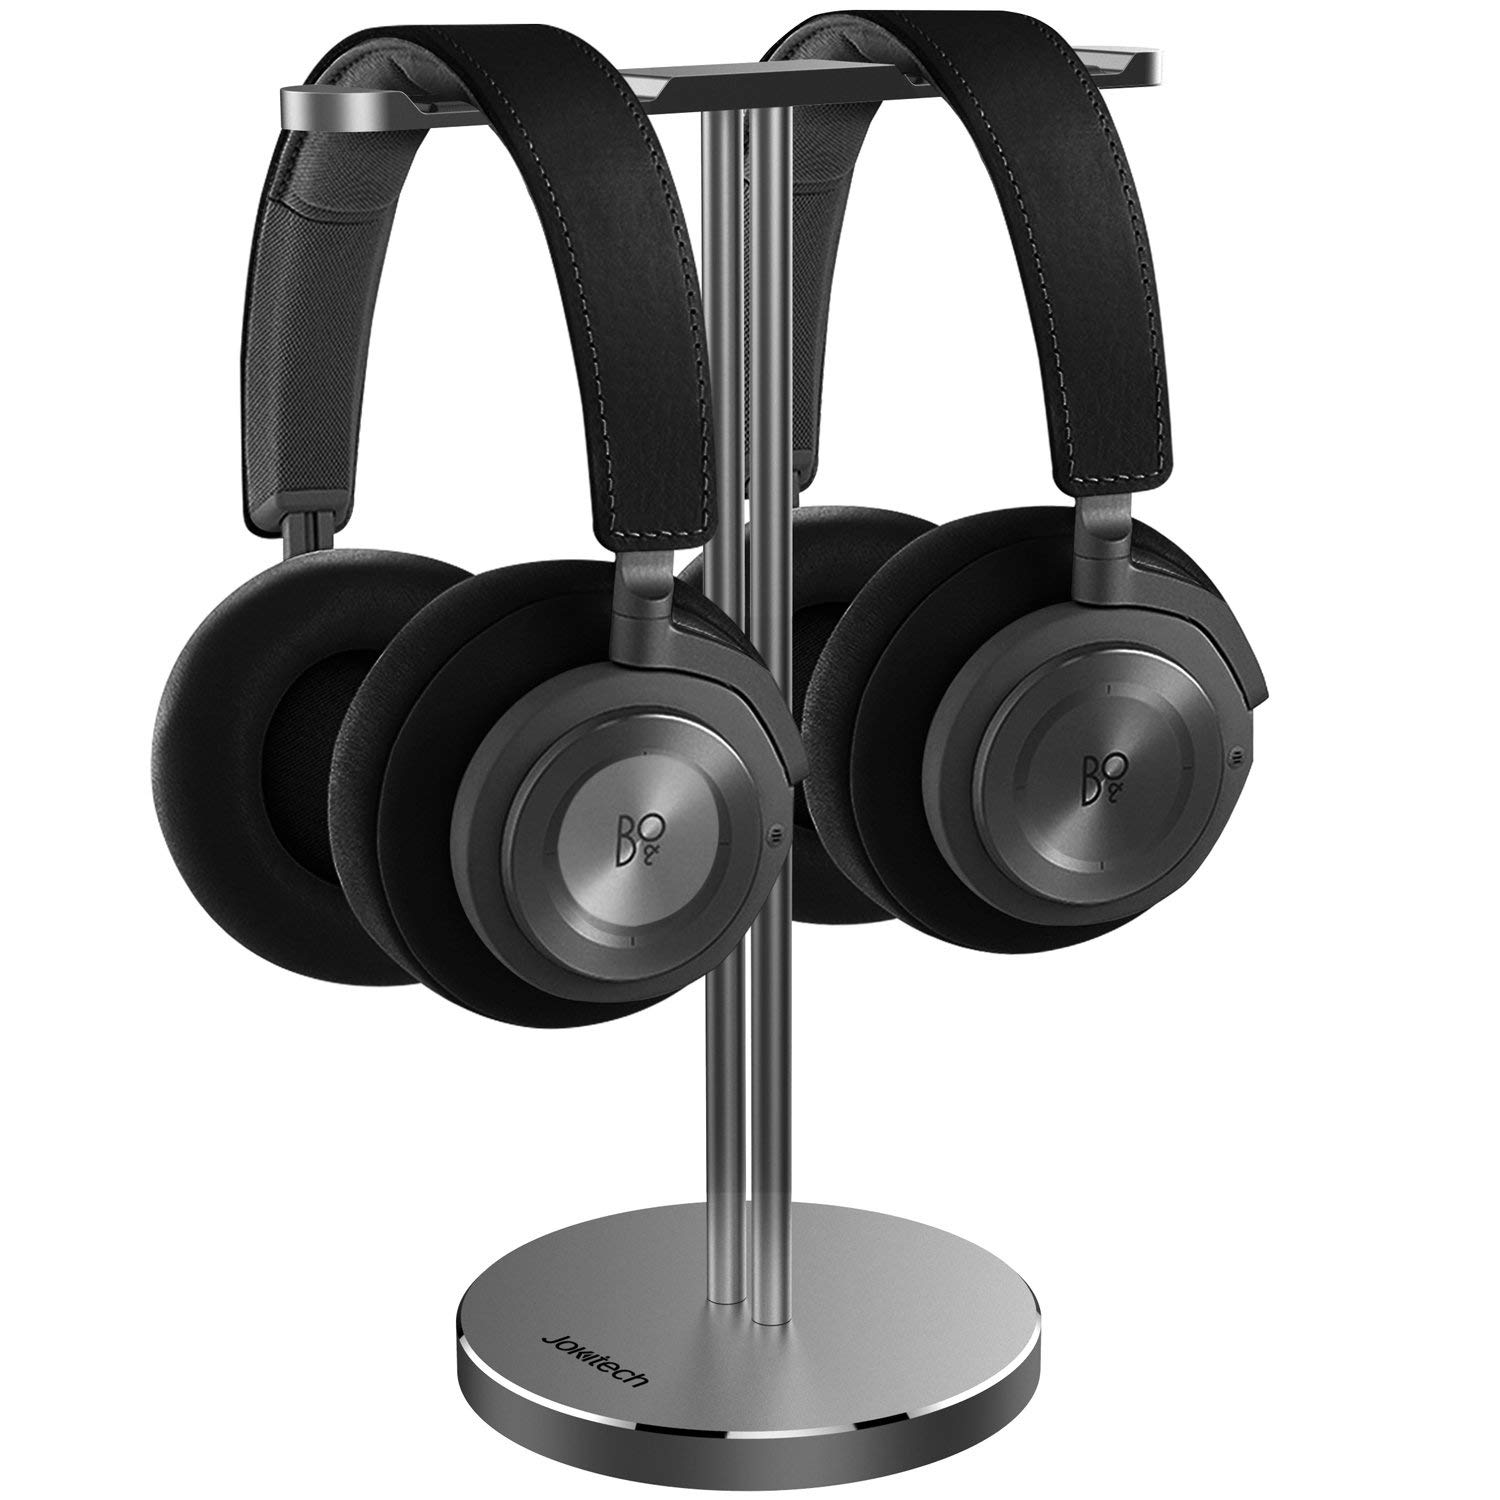 Jokitech Aluminum Alloy Desk 3 Headset